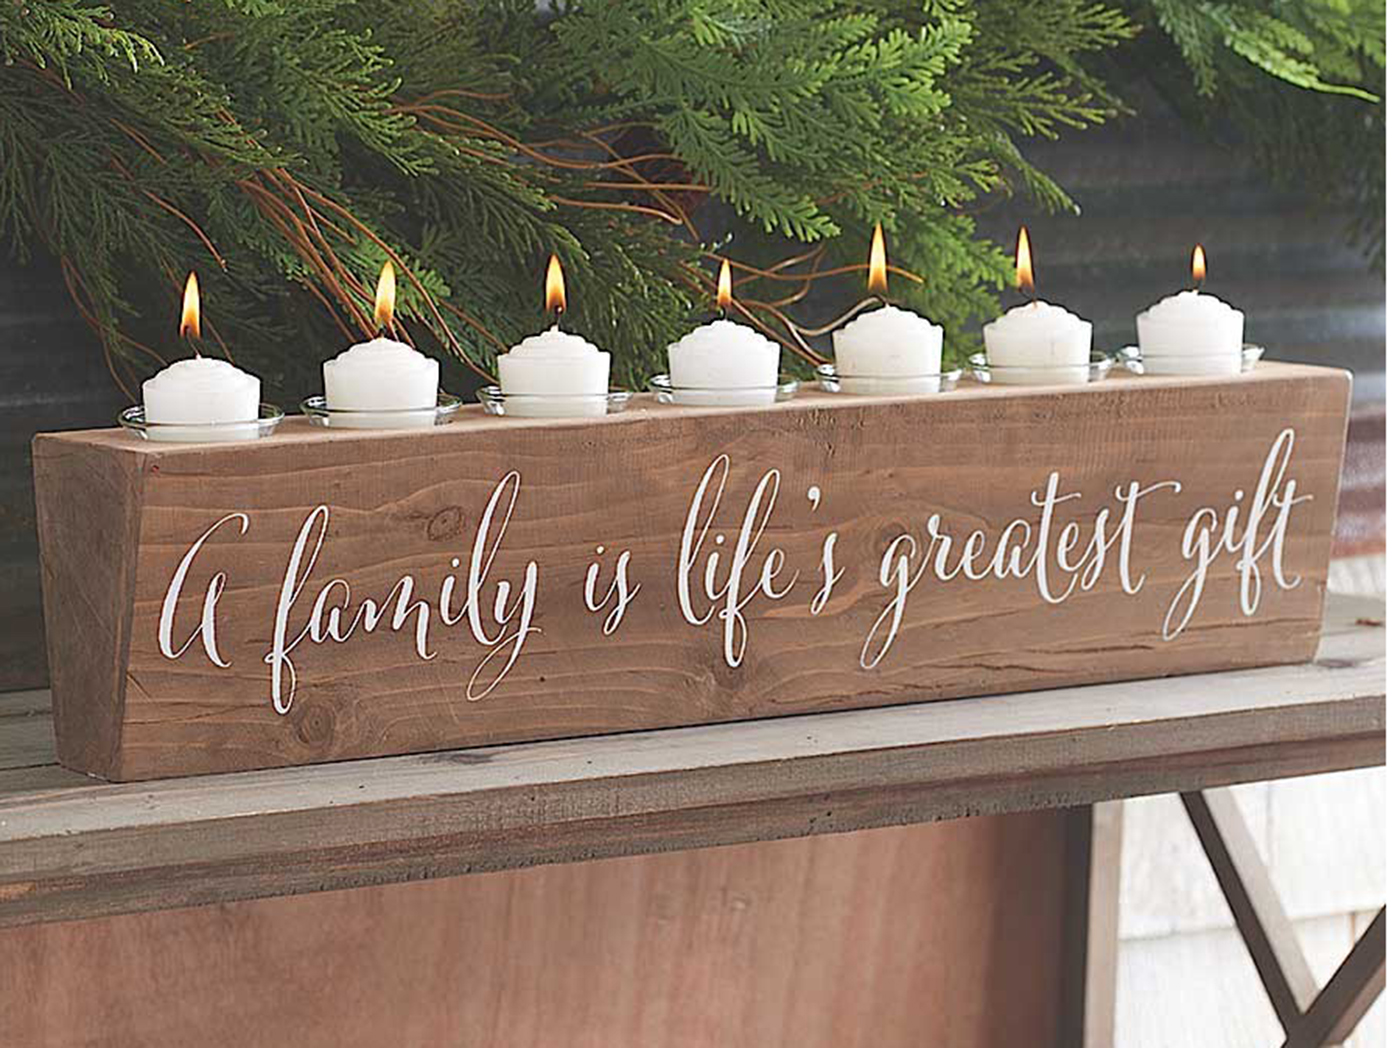 Greatest Gift Candleholder 5X22.5""